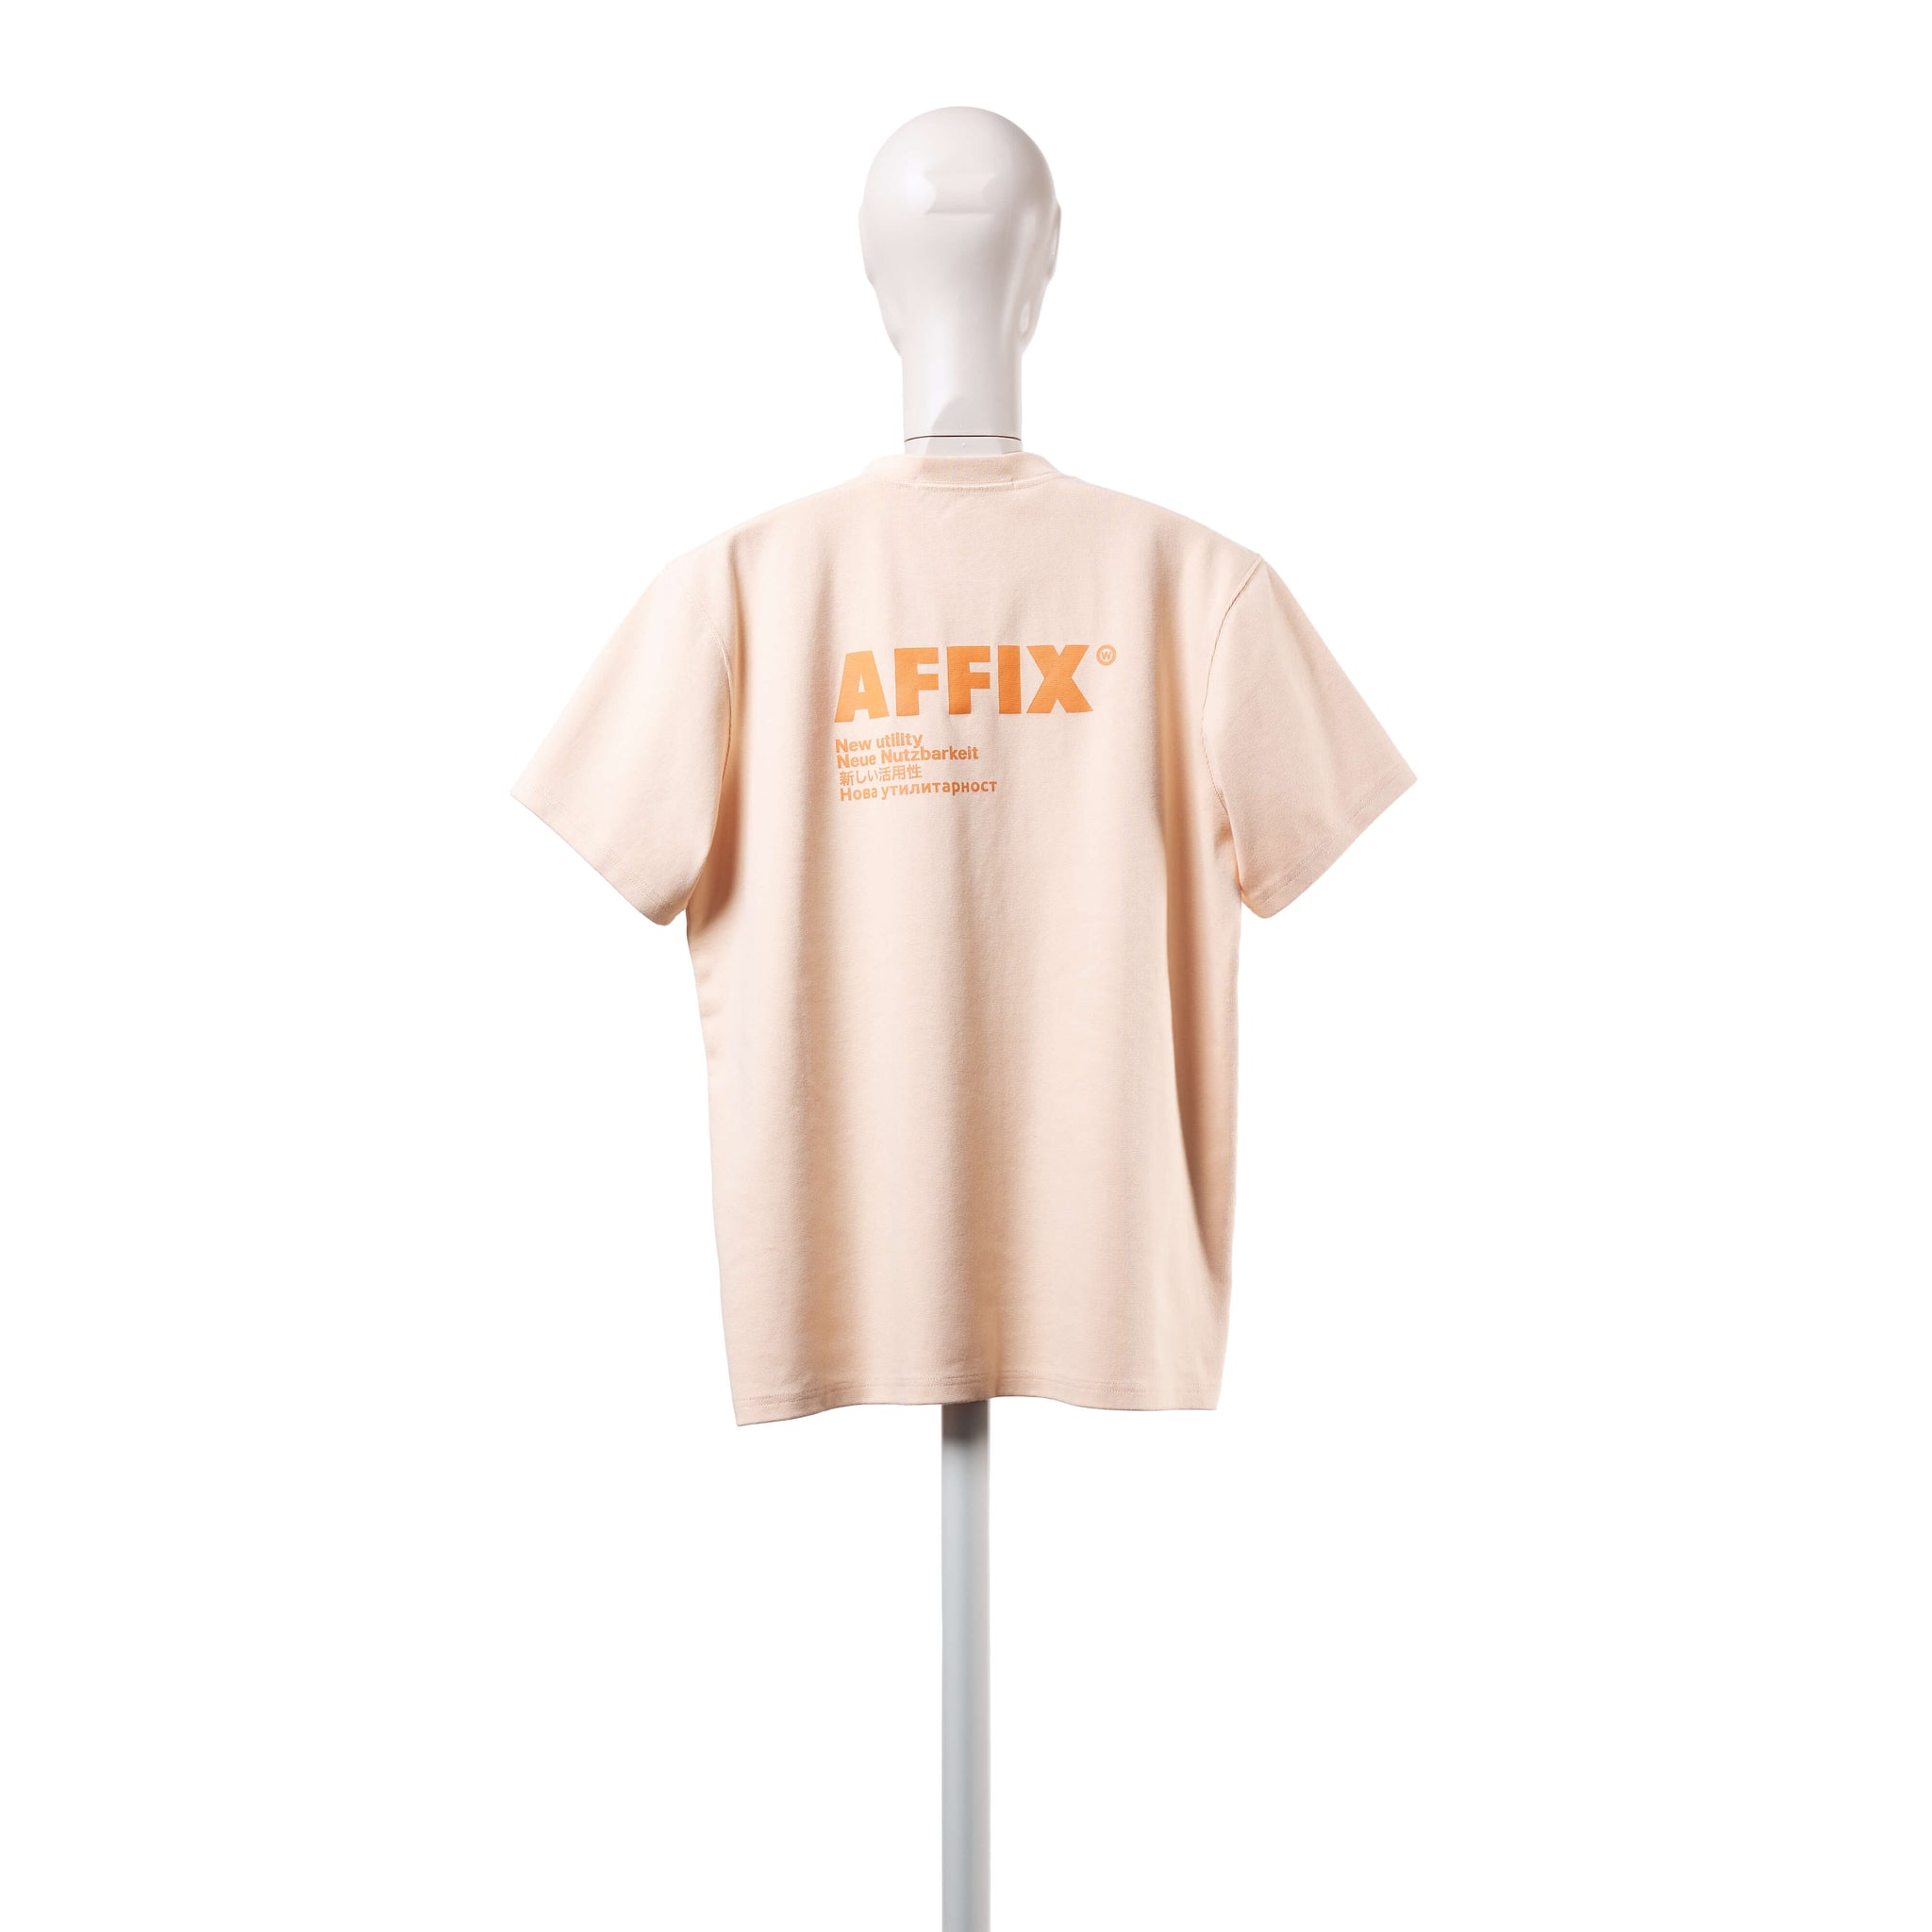 AFFIX WORKS AFFX WRKS STANDARDISED LOGO POCKET T-SHIRT PLASTER